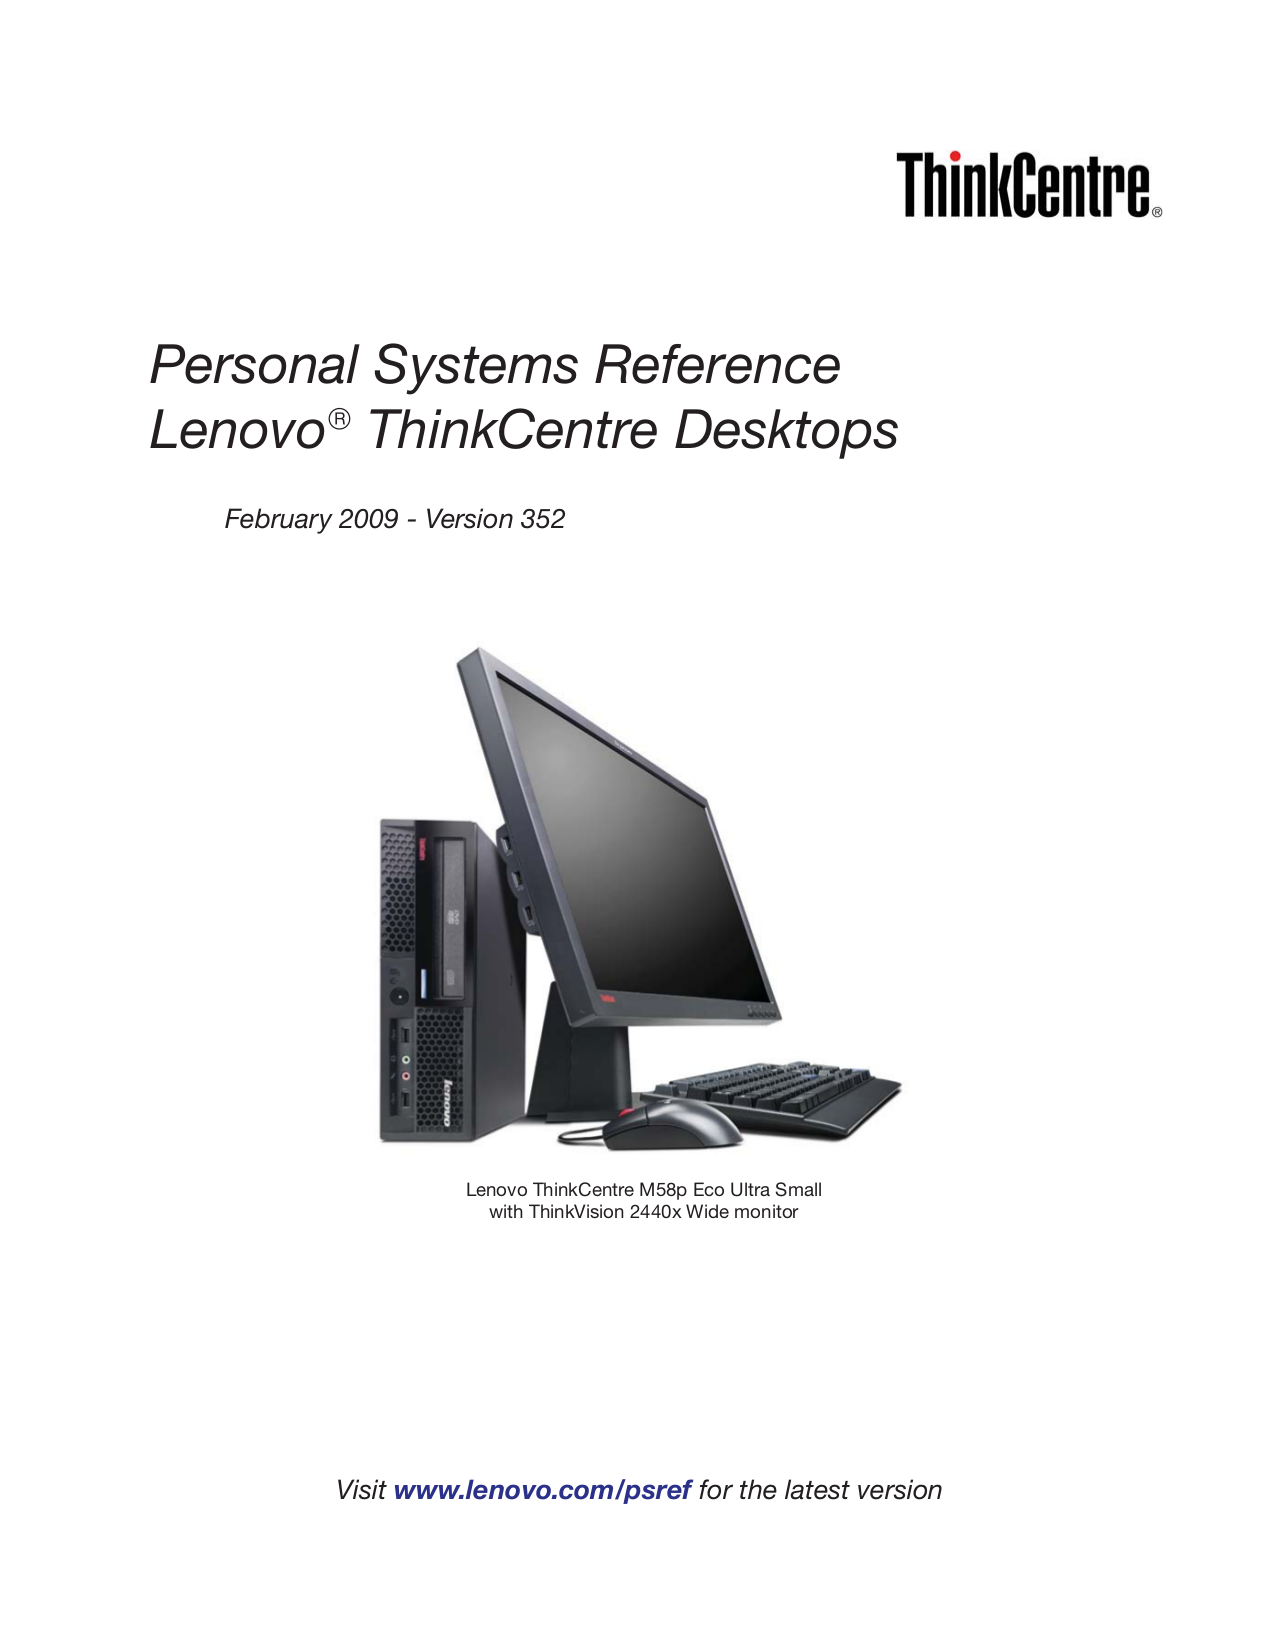 pdf for Lenovo Desktop ThinkCentre M57p 9979 manual